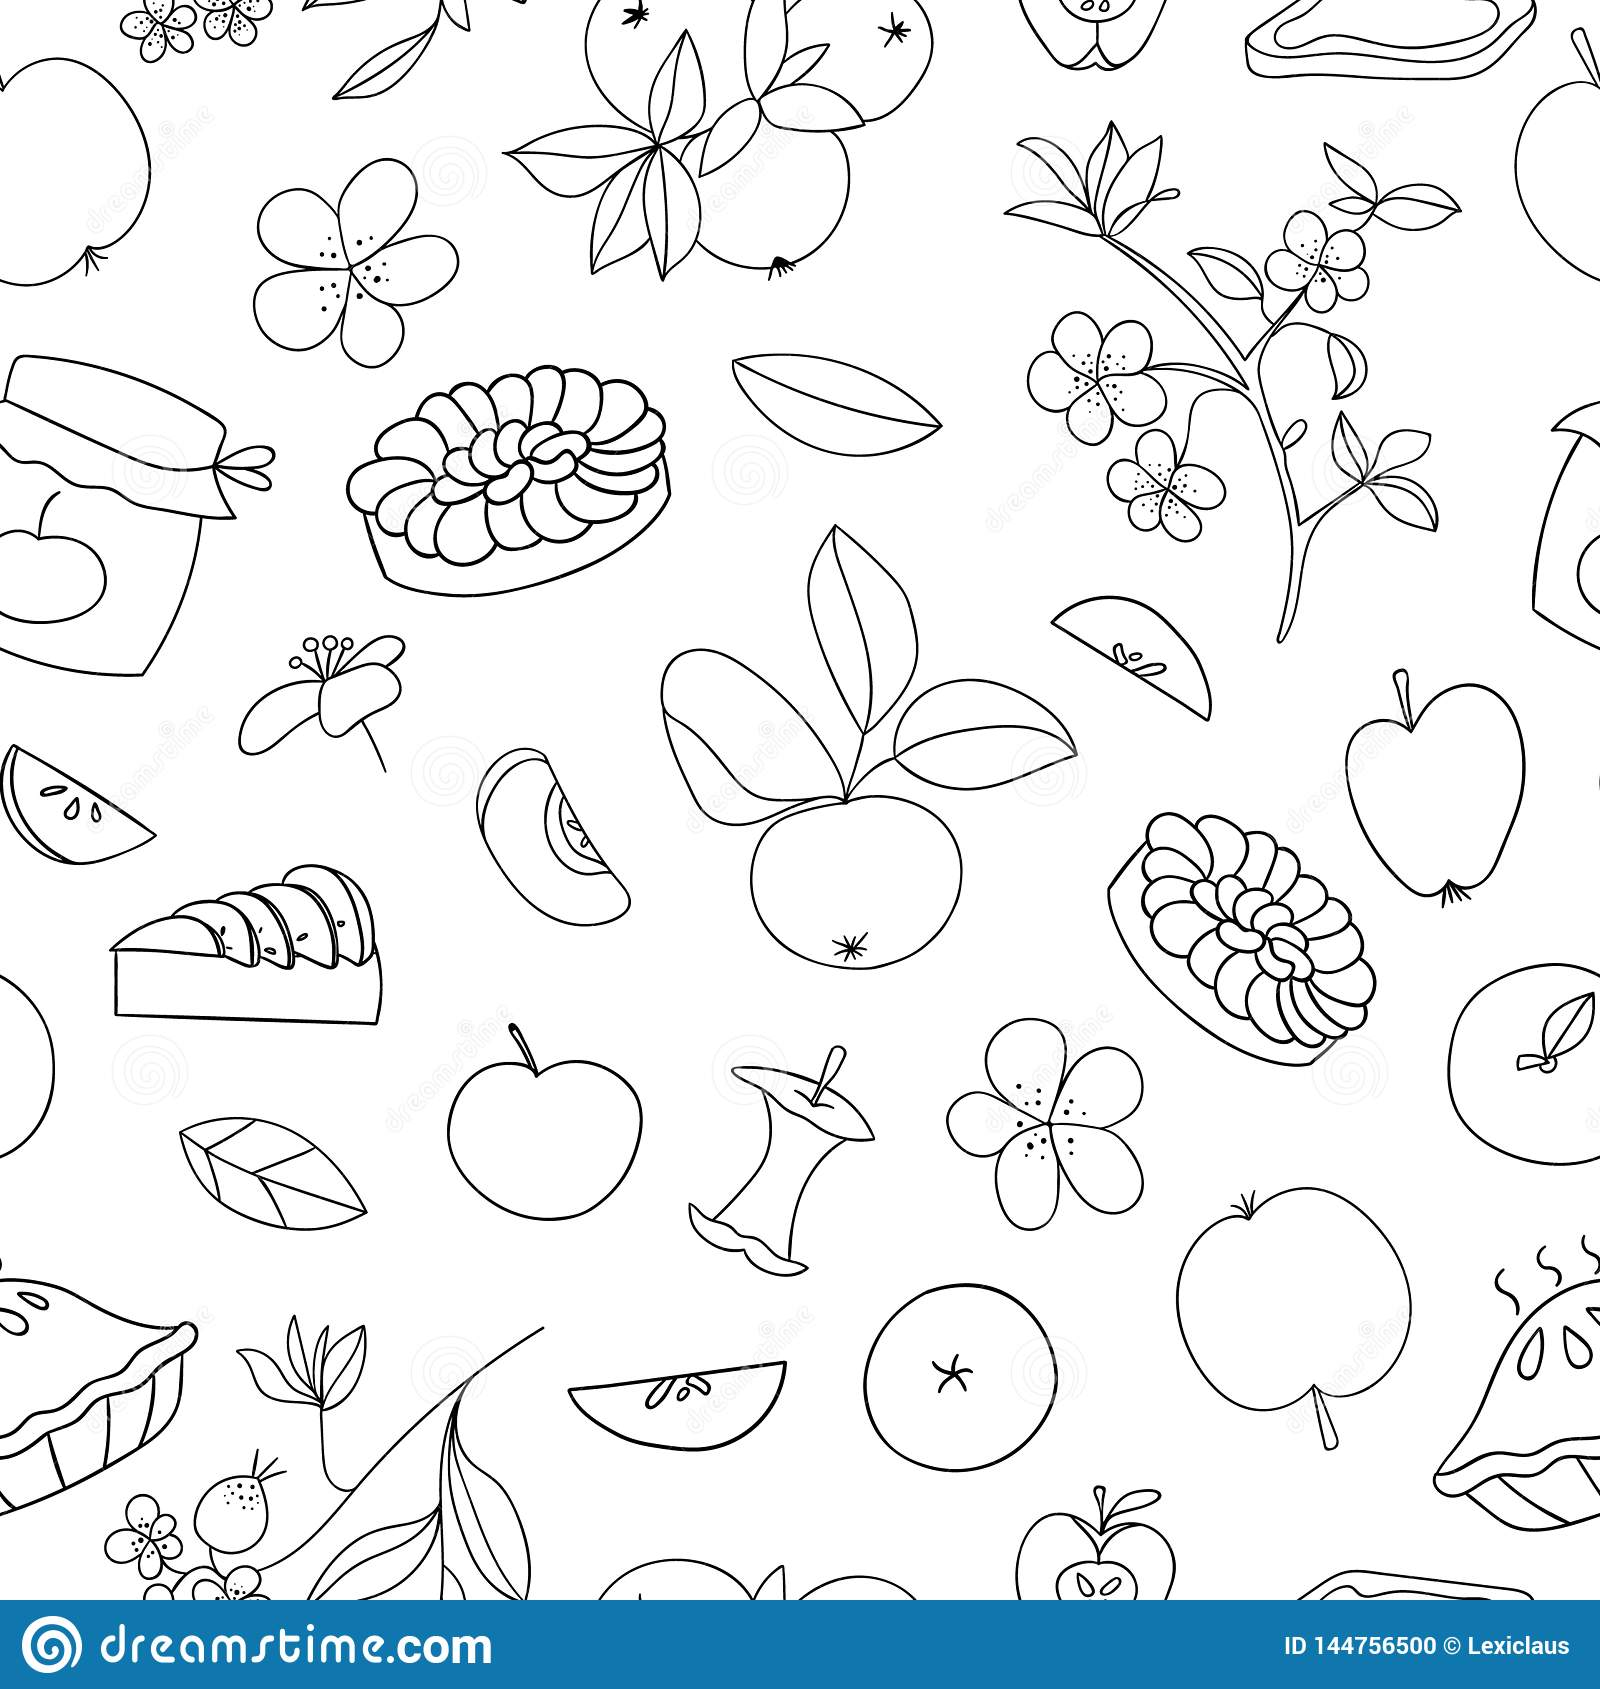 Vector seamless pattern of cute hand-drawn apples, apple pie, flowers, jam jar. Black and white repeat background. Home made food